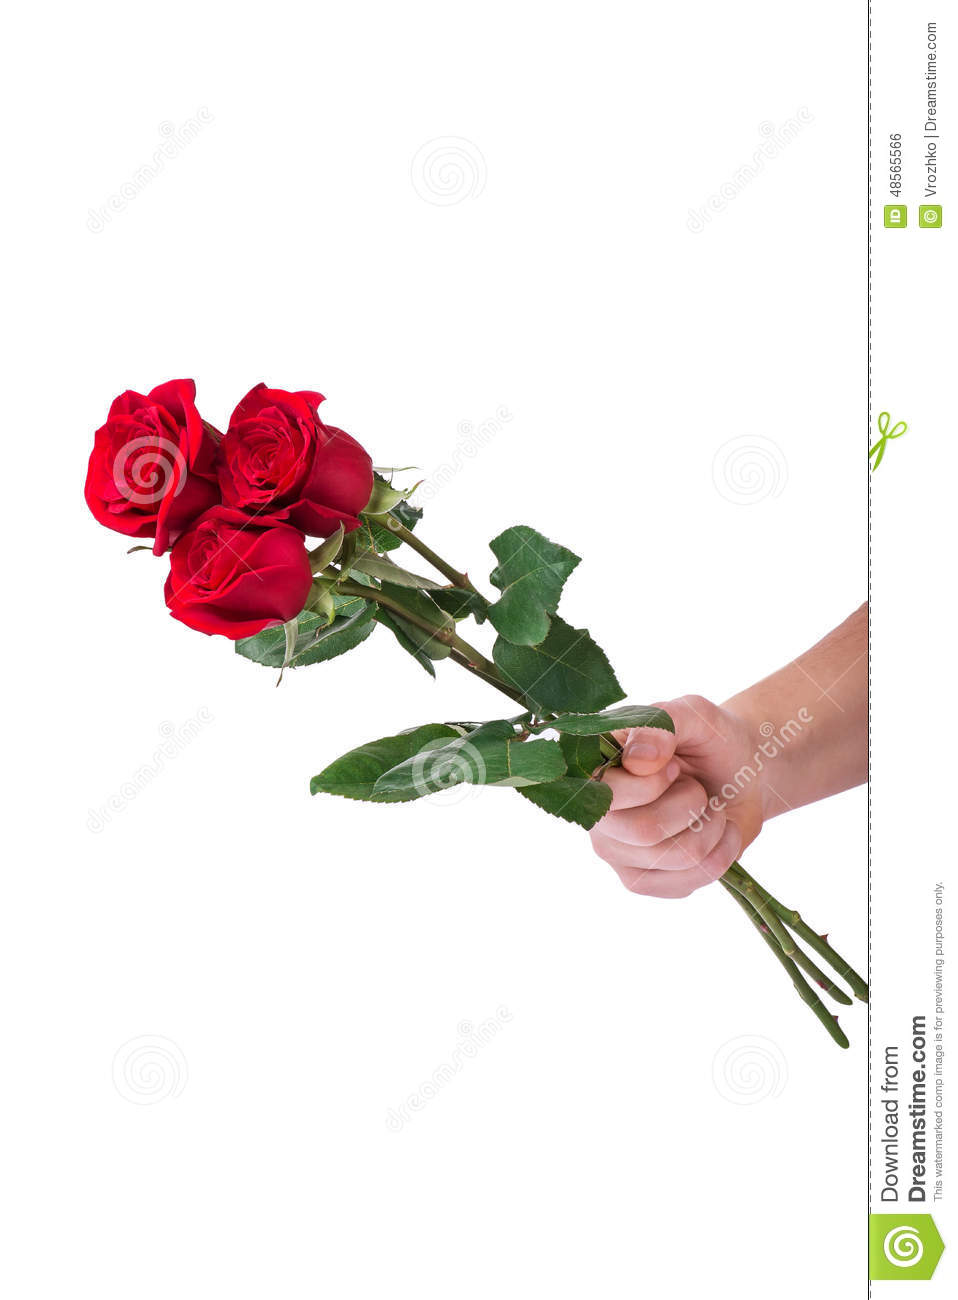 Red rose bouquet flower in hand men isolated with clipping path red rose bouquet flower in hand men isolated with clipping path izmirmasajfo